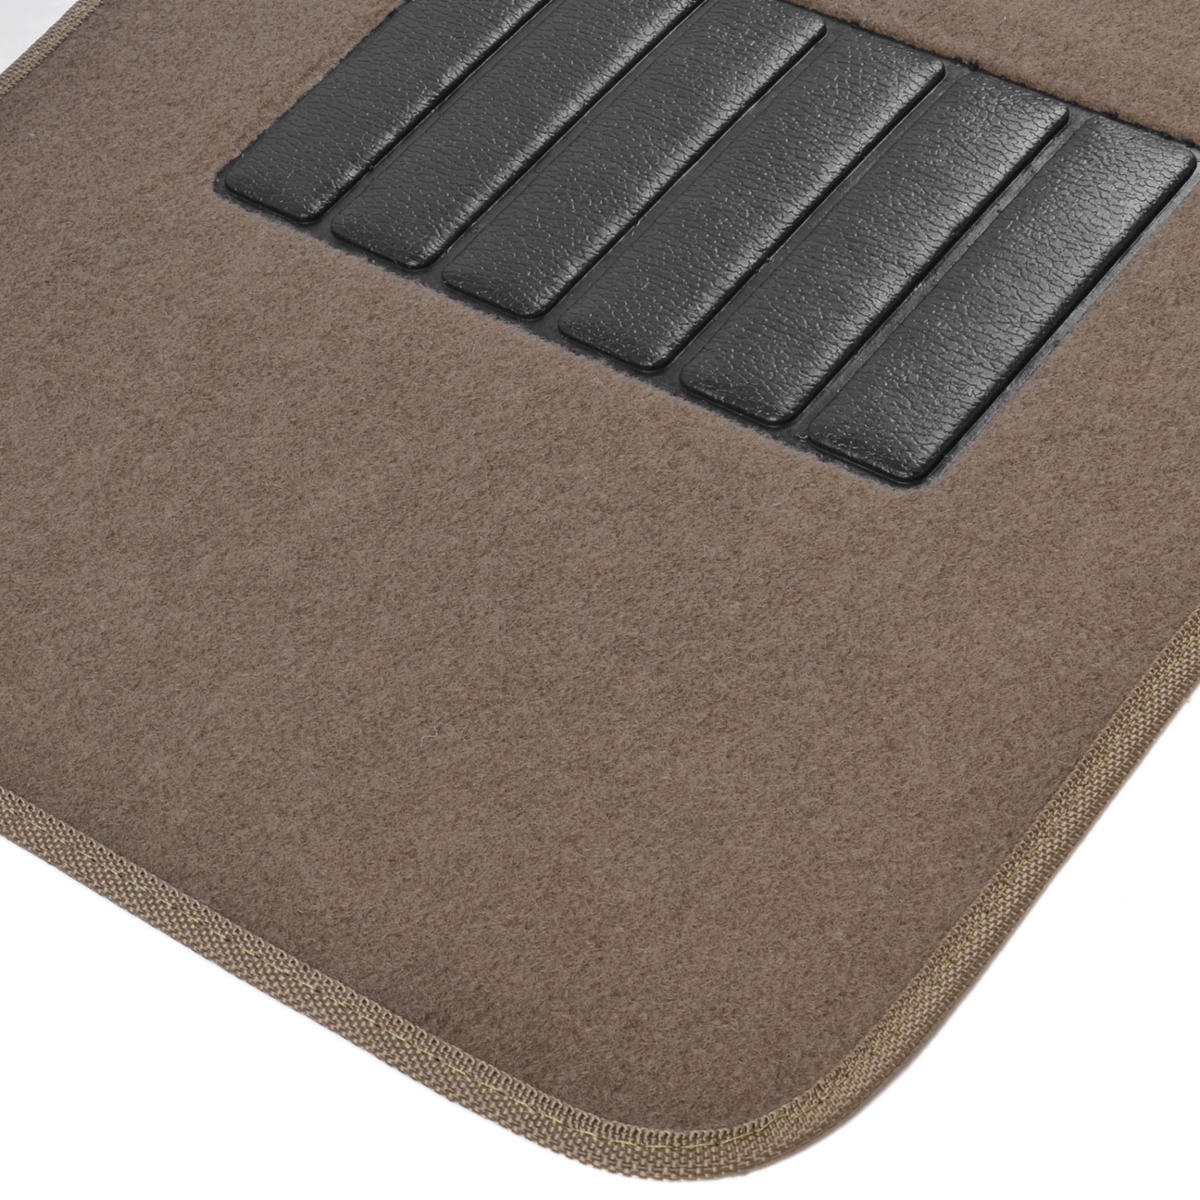 Brown Carpet Car Floor Mats Set Of 4 Driver Passenger And